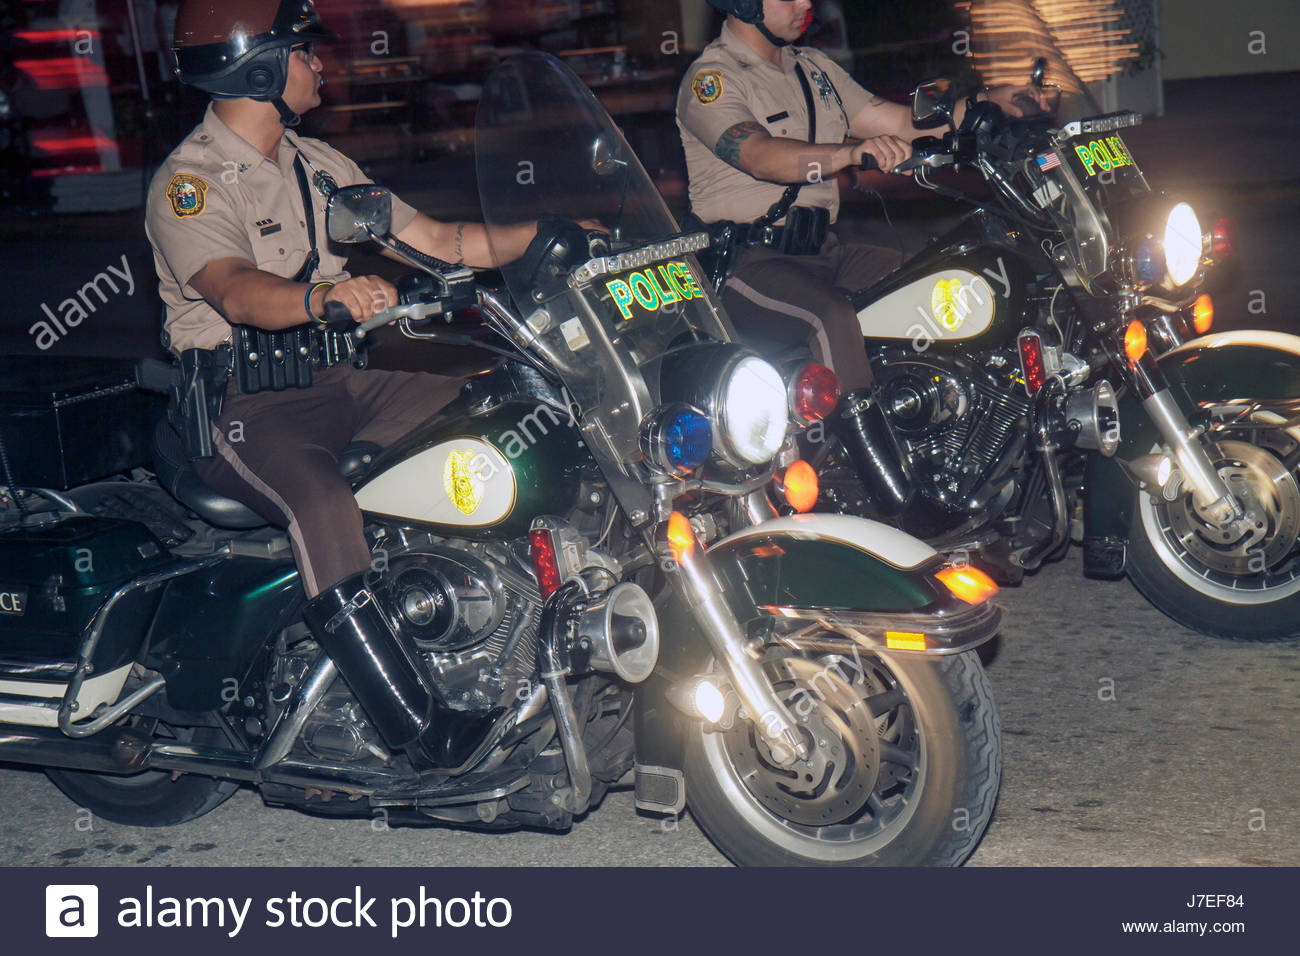 On Police Motorcycle Stock Photos Amp On Police Motorcycle